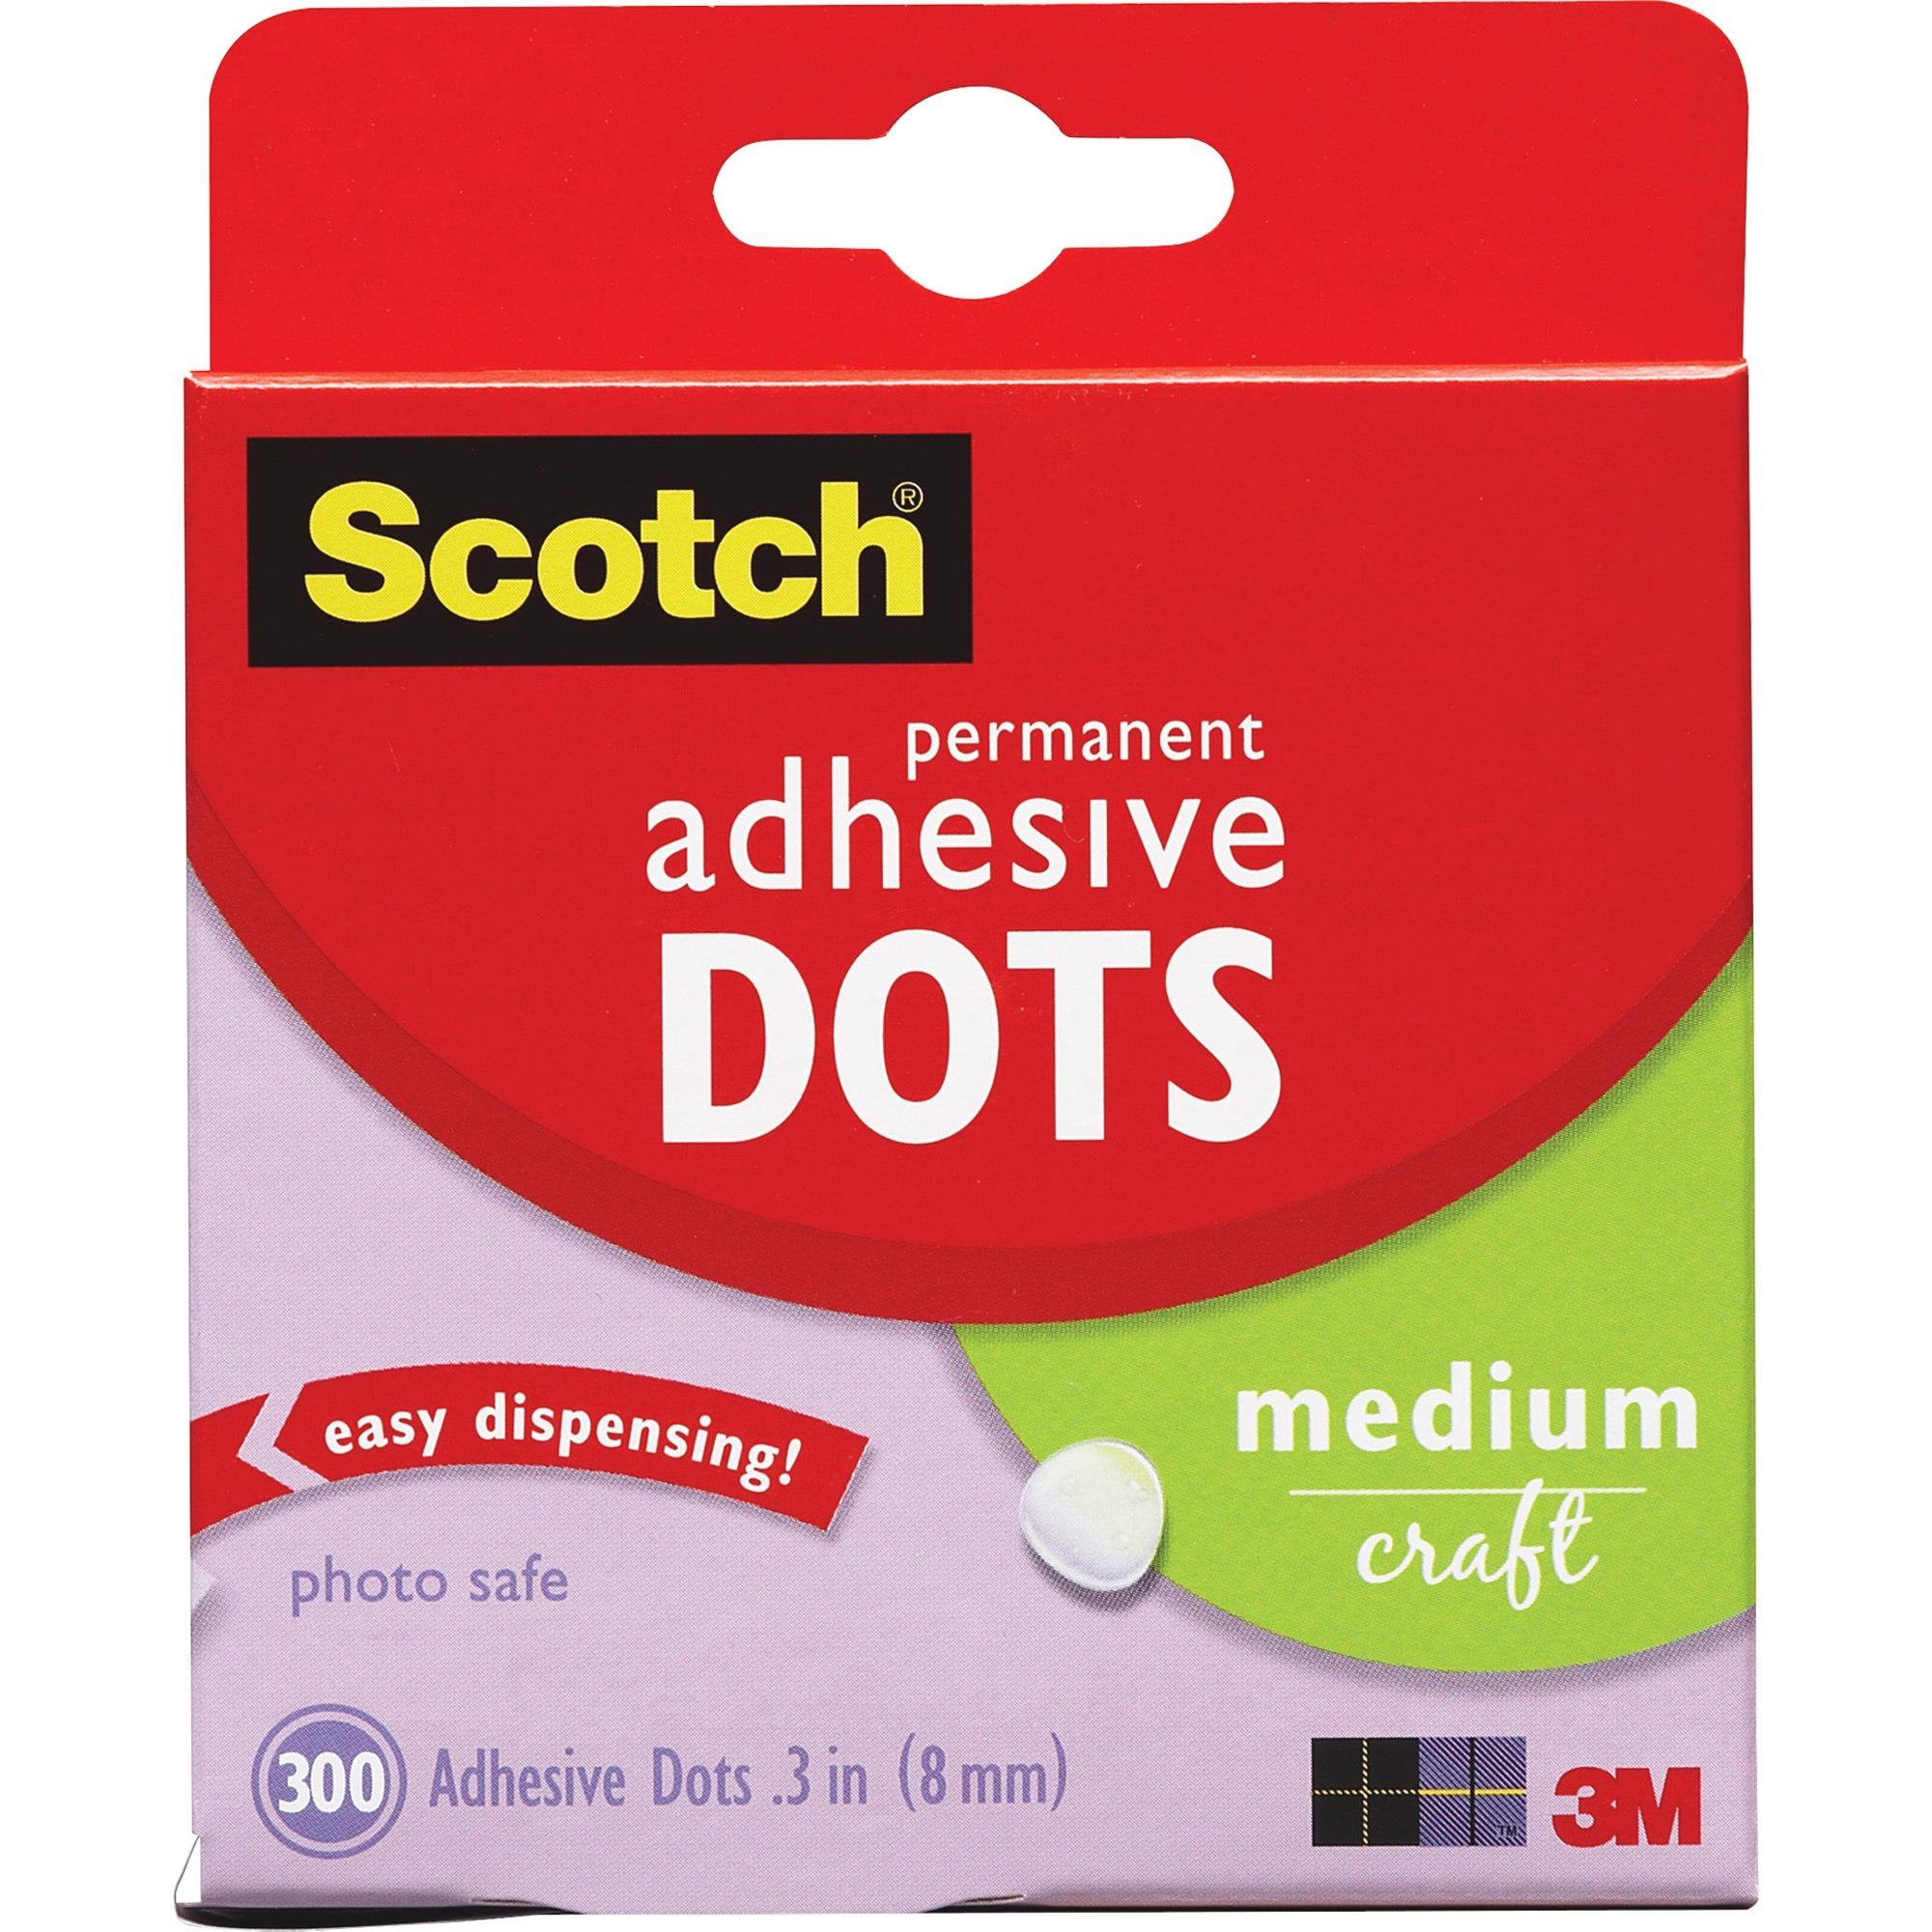 Scotch, MMM010300M, Medium Craft Permanent Adhesive Dots, 300 / Box, Clear